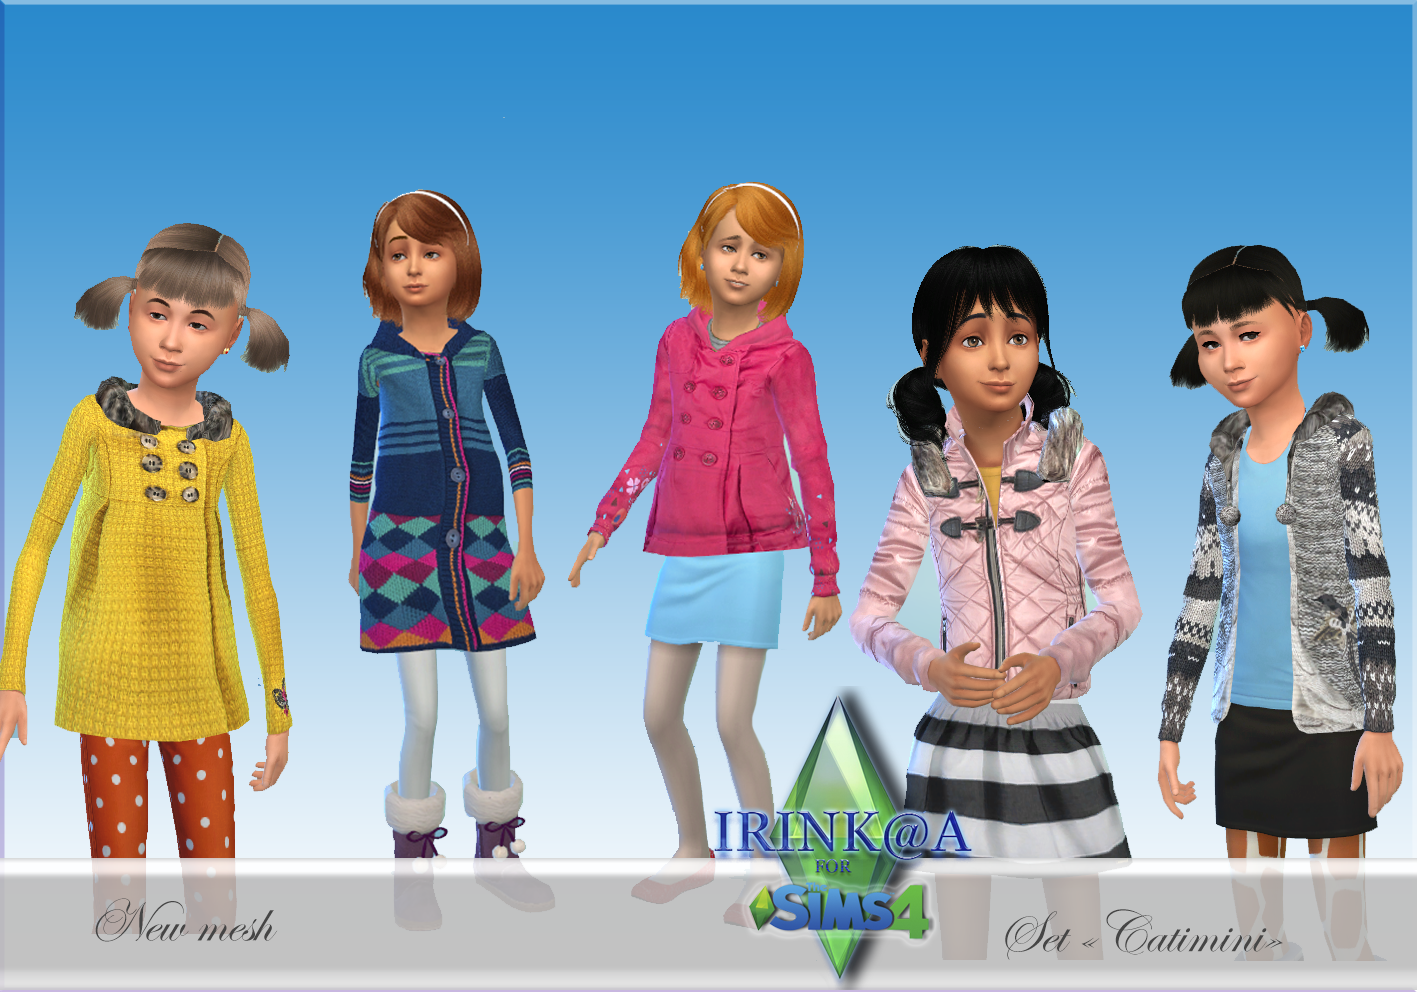 Clothing for Girls by Irink@a